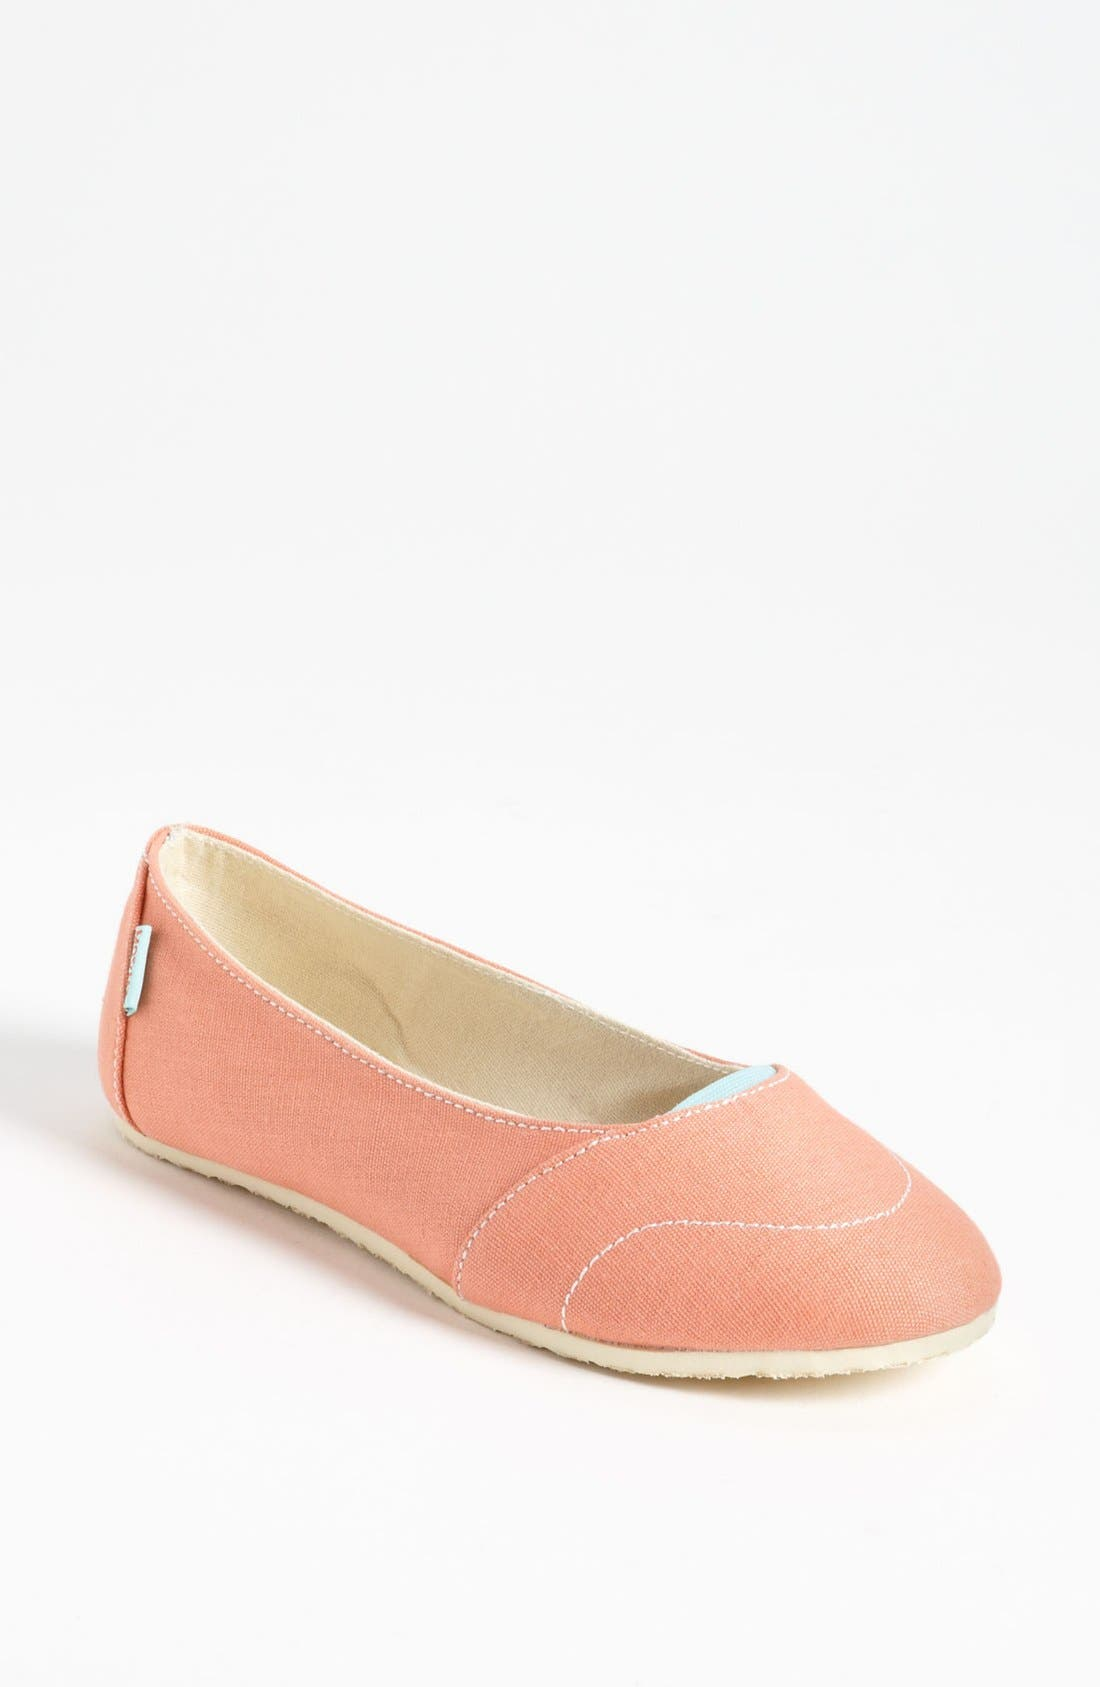 Alternate Image 1 Selected - The People's Movement Ballet Flat